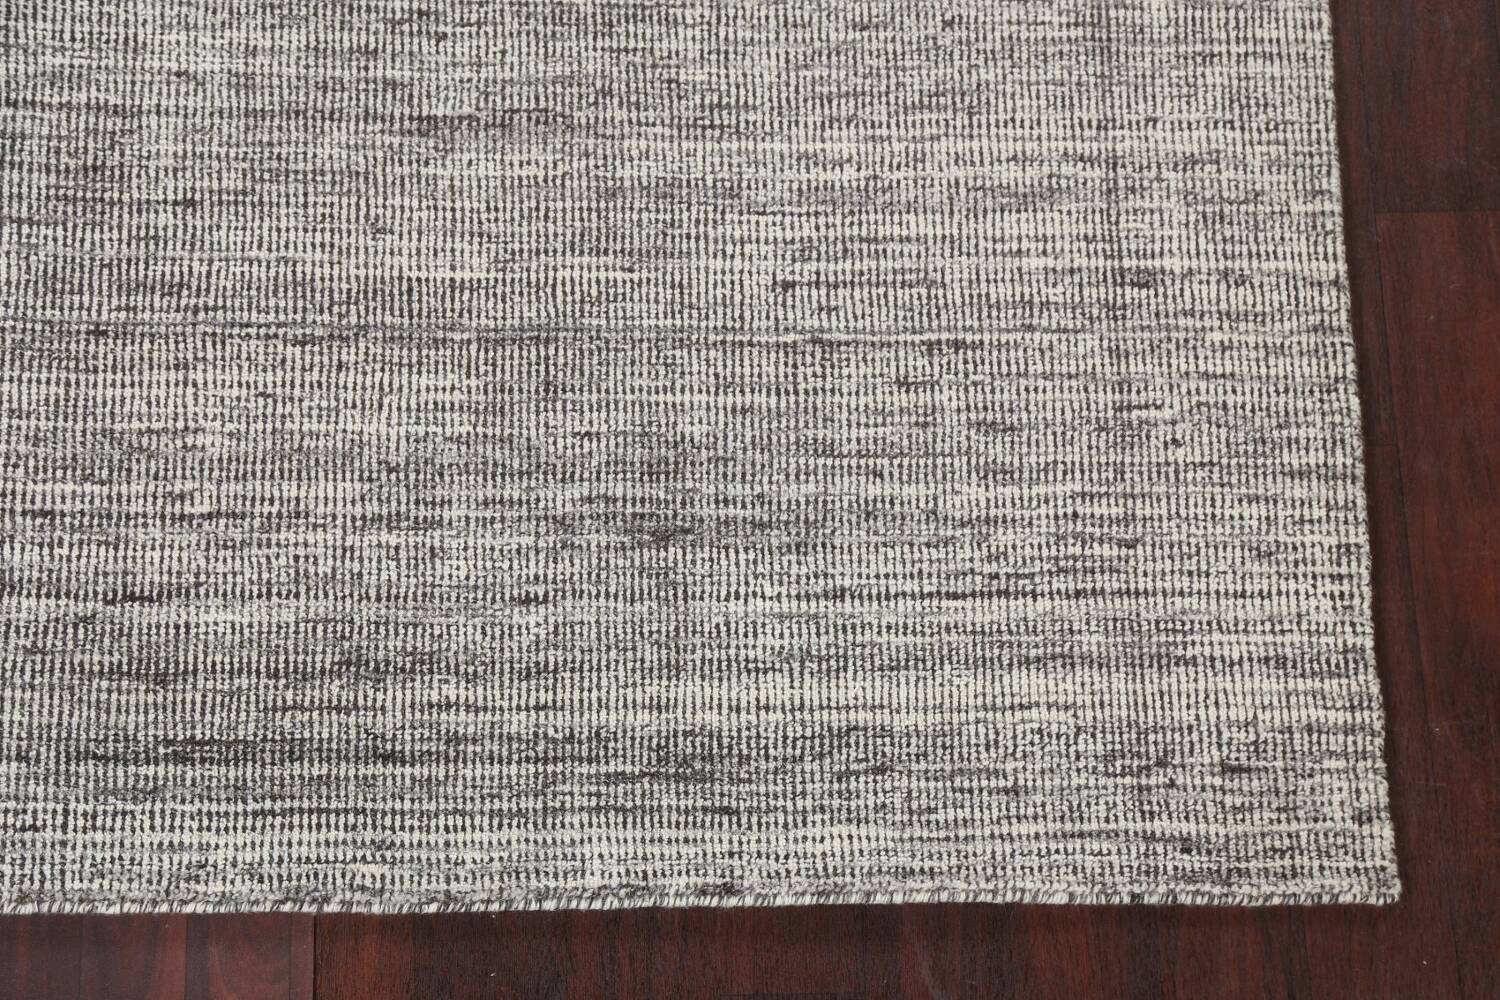 Abstract Gabbeh Wool Area Rug 5x8 image 7